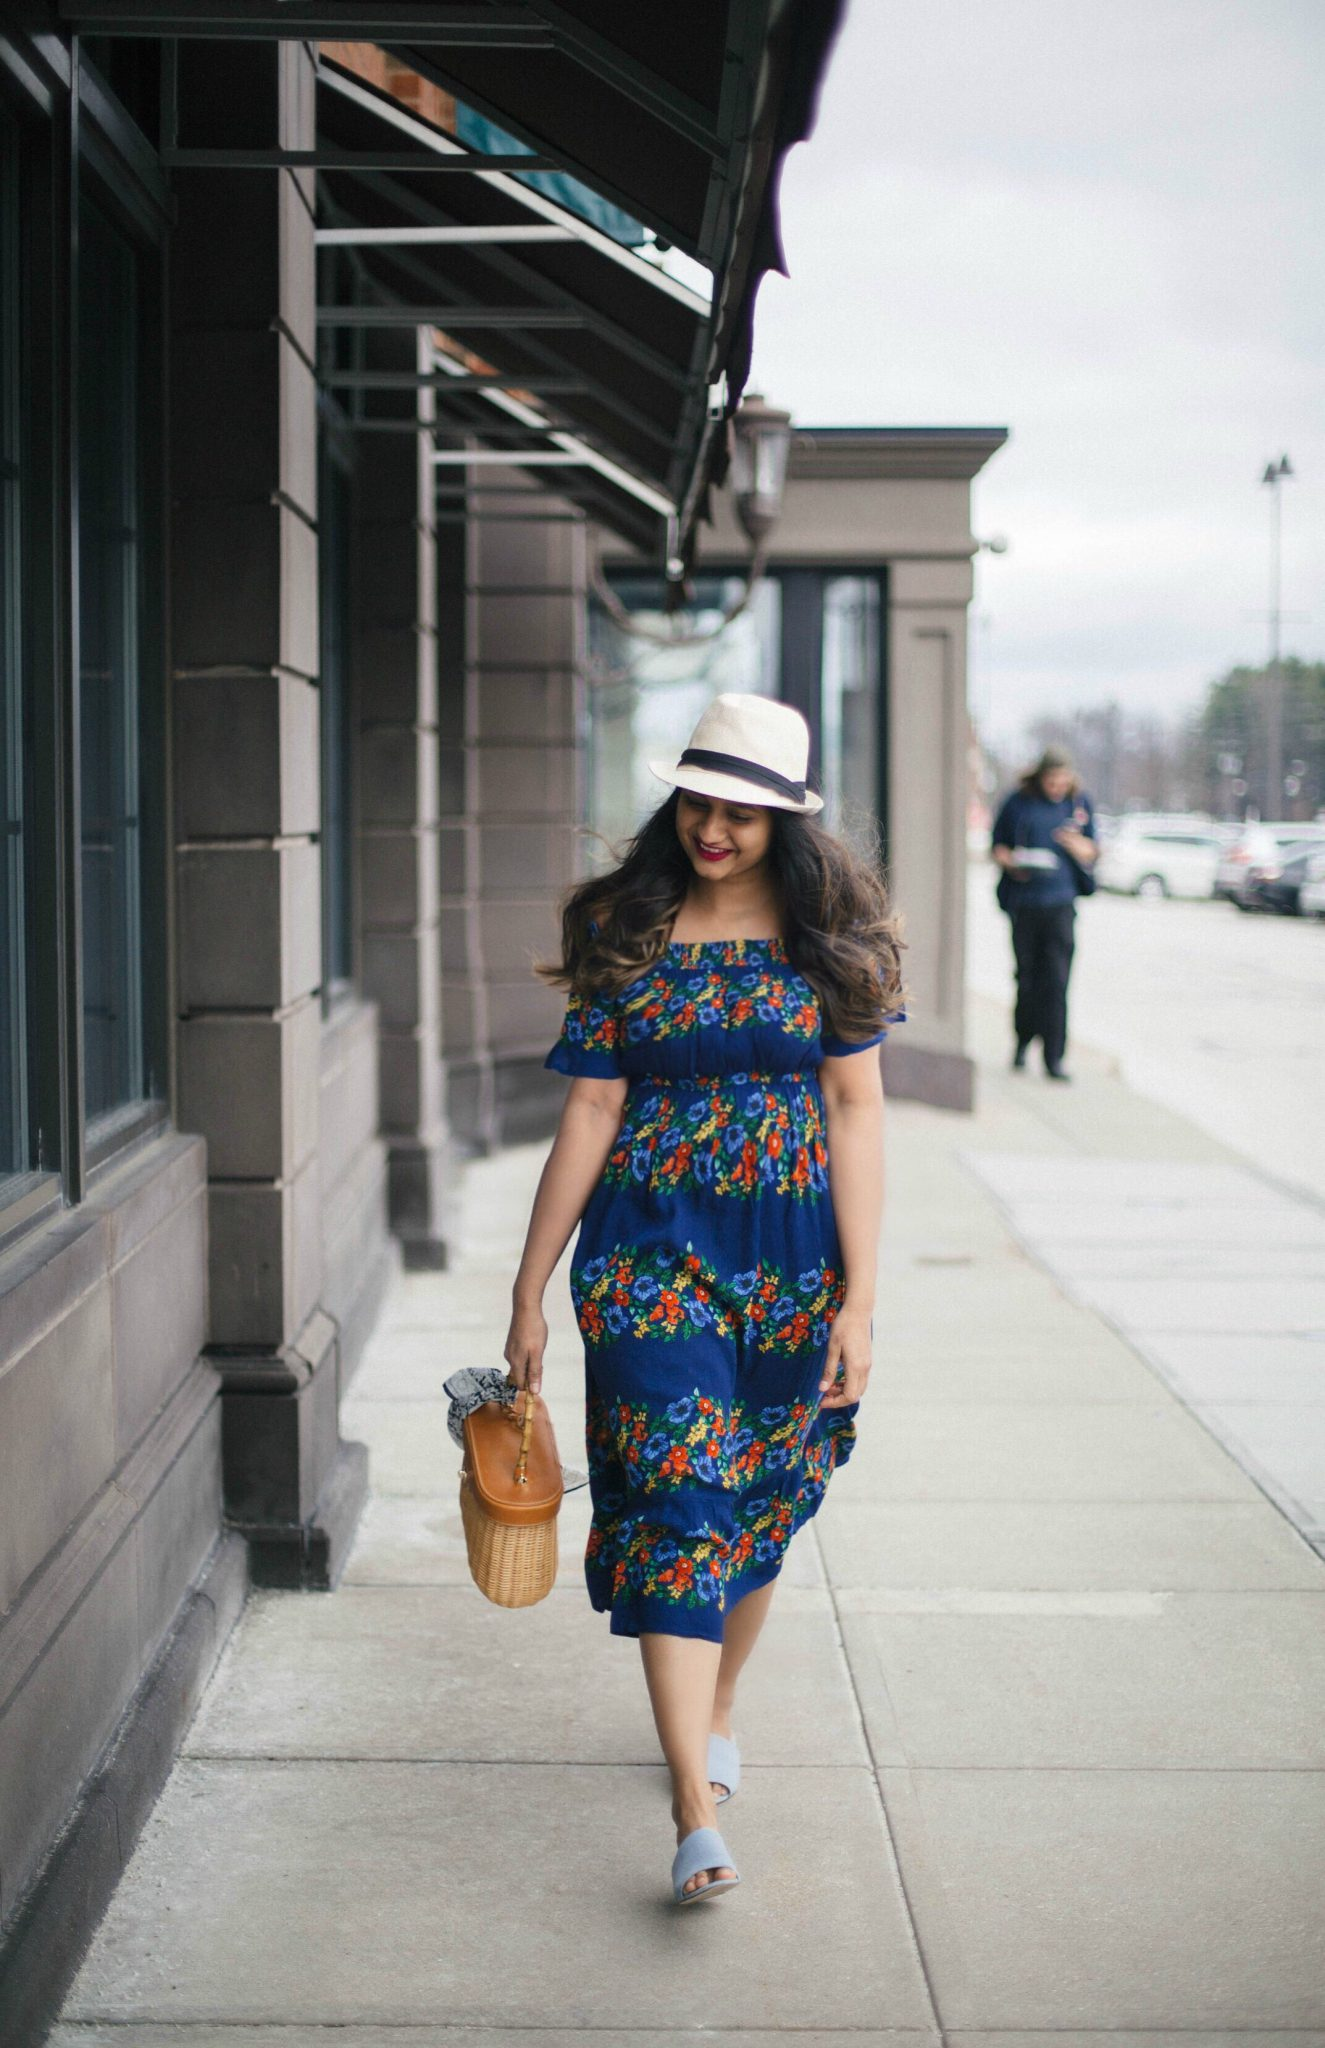 Ava-bamboo-handle-wicker-satchel-1 - The Best Spring Summer Dresses featured by Ohio modest fashion blogger, Dreaming Loud